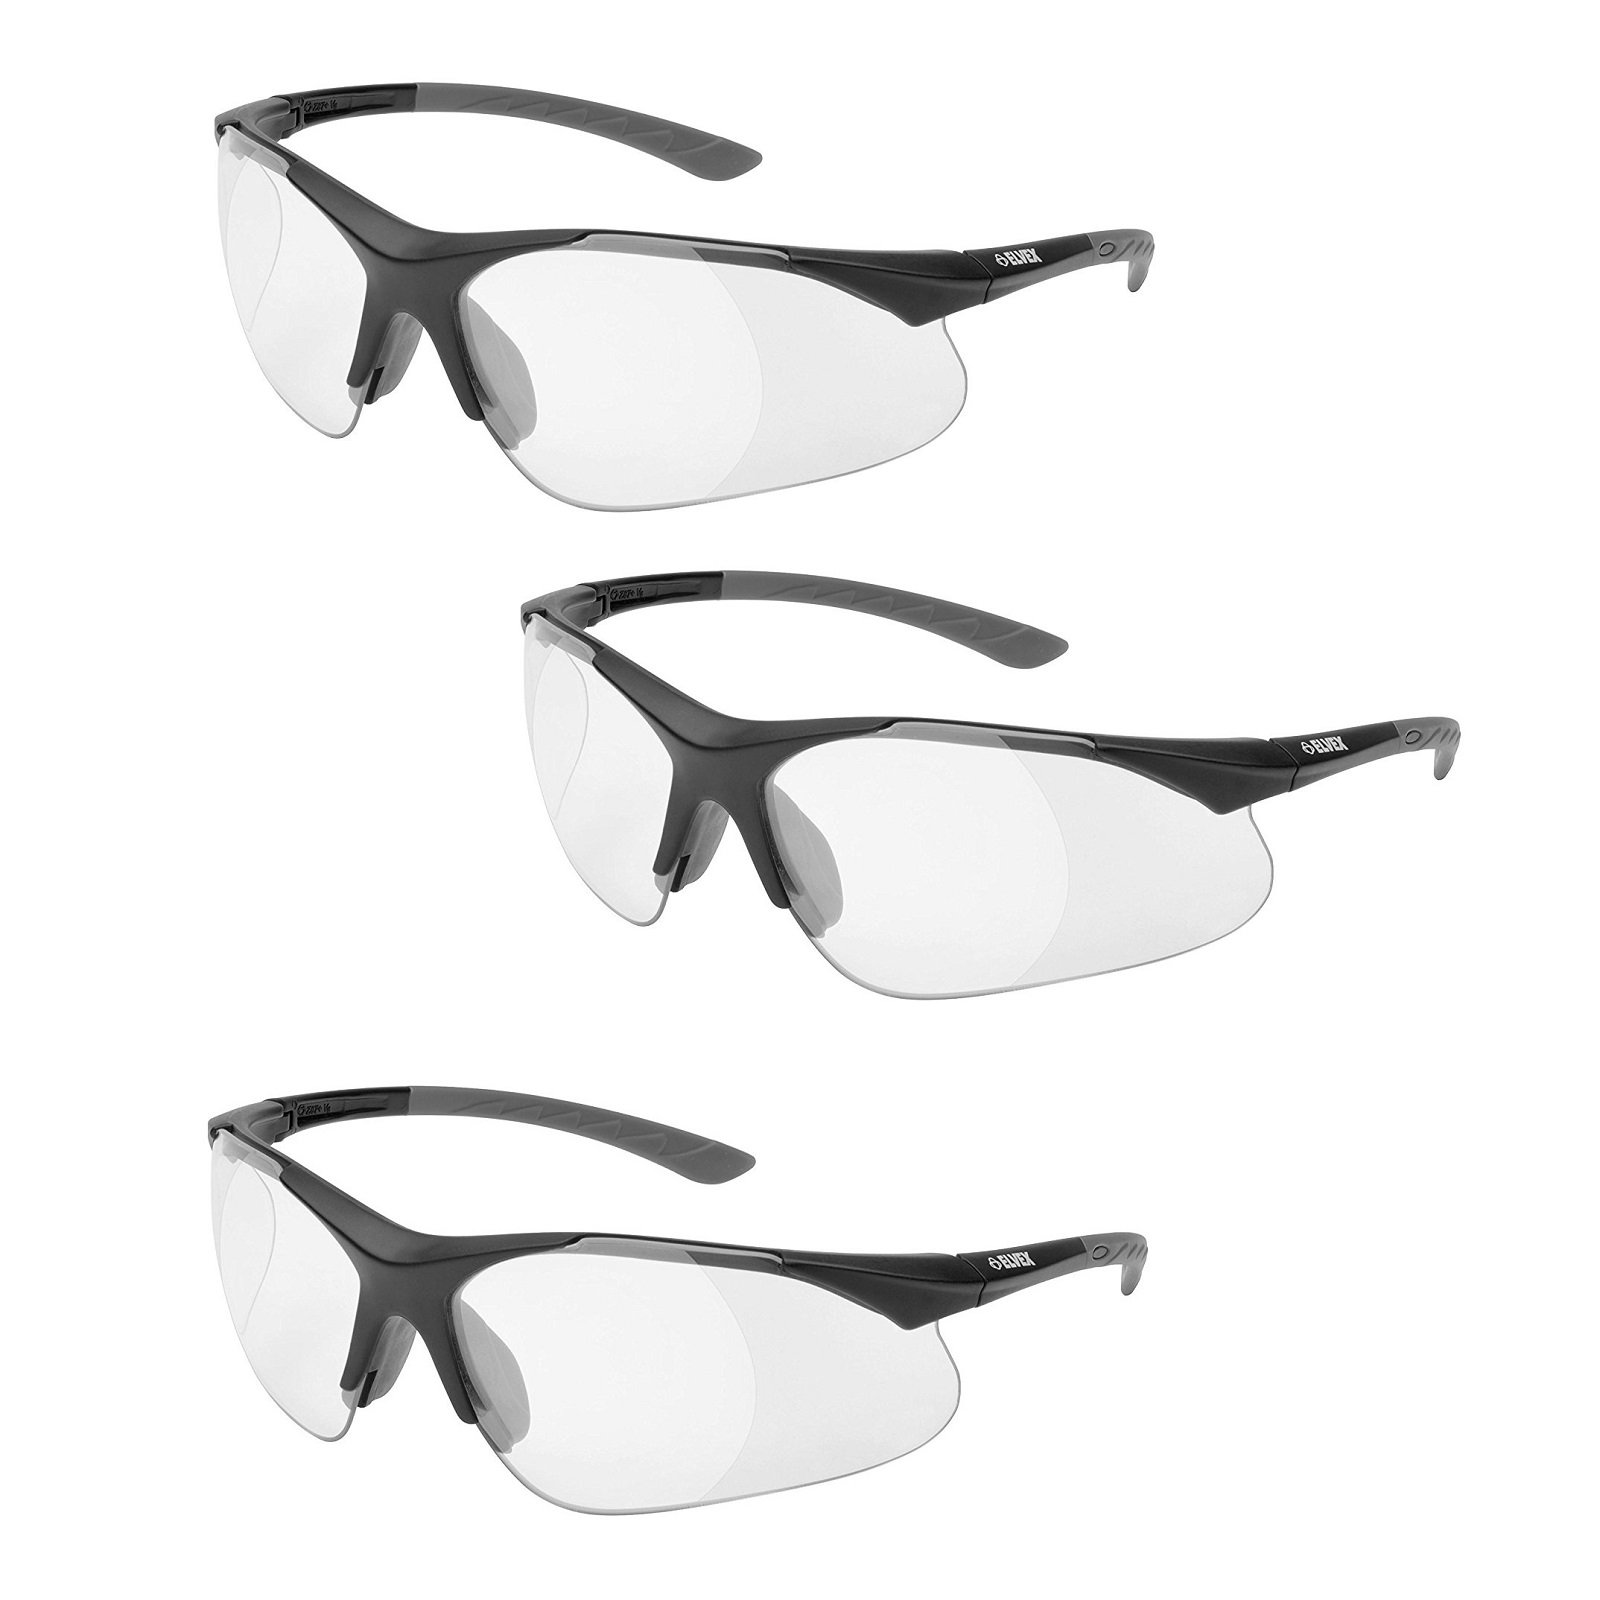 Elvex RX-500C-2.0 Full Lens, Black Frame /Grey Temple Tips 3-pairs by Elvex